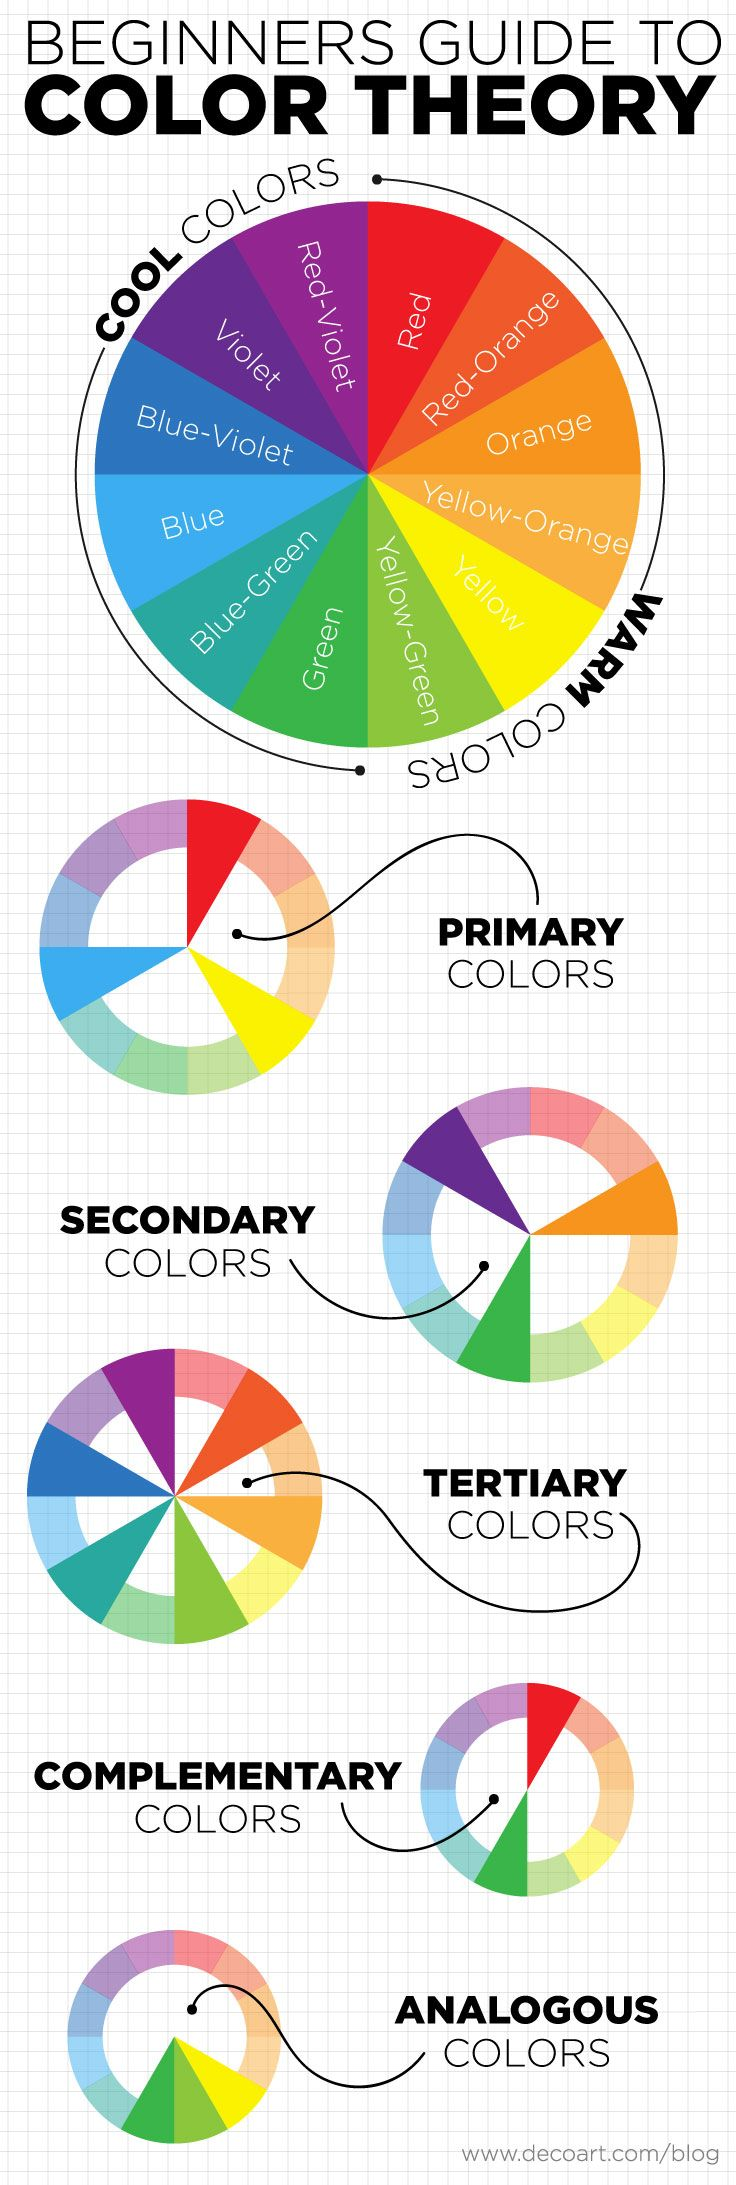 Color wheel complementary colors - Decoart Blog Na Color Theory Basics The Color Wheel